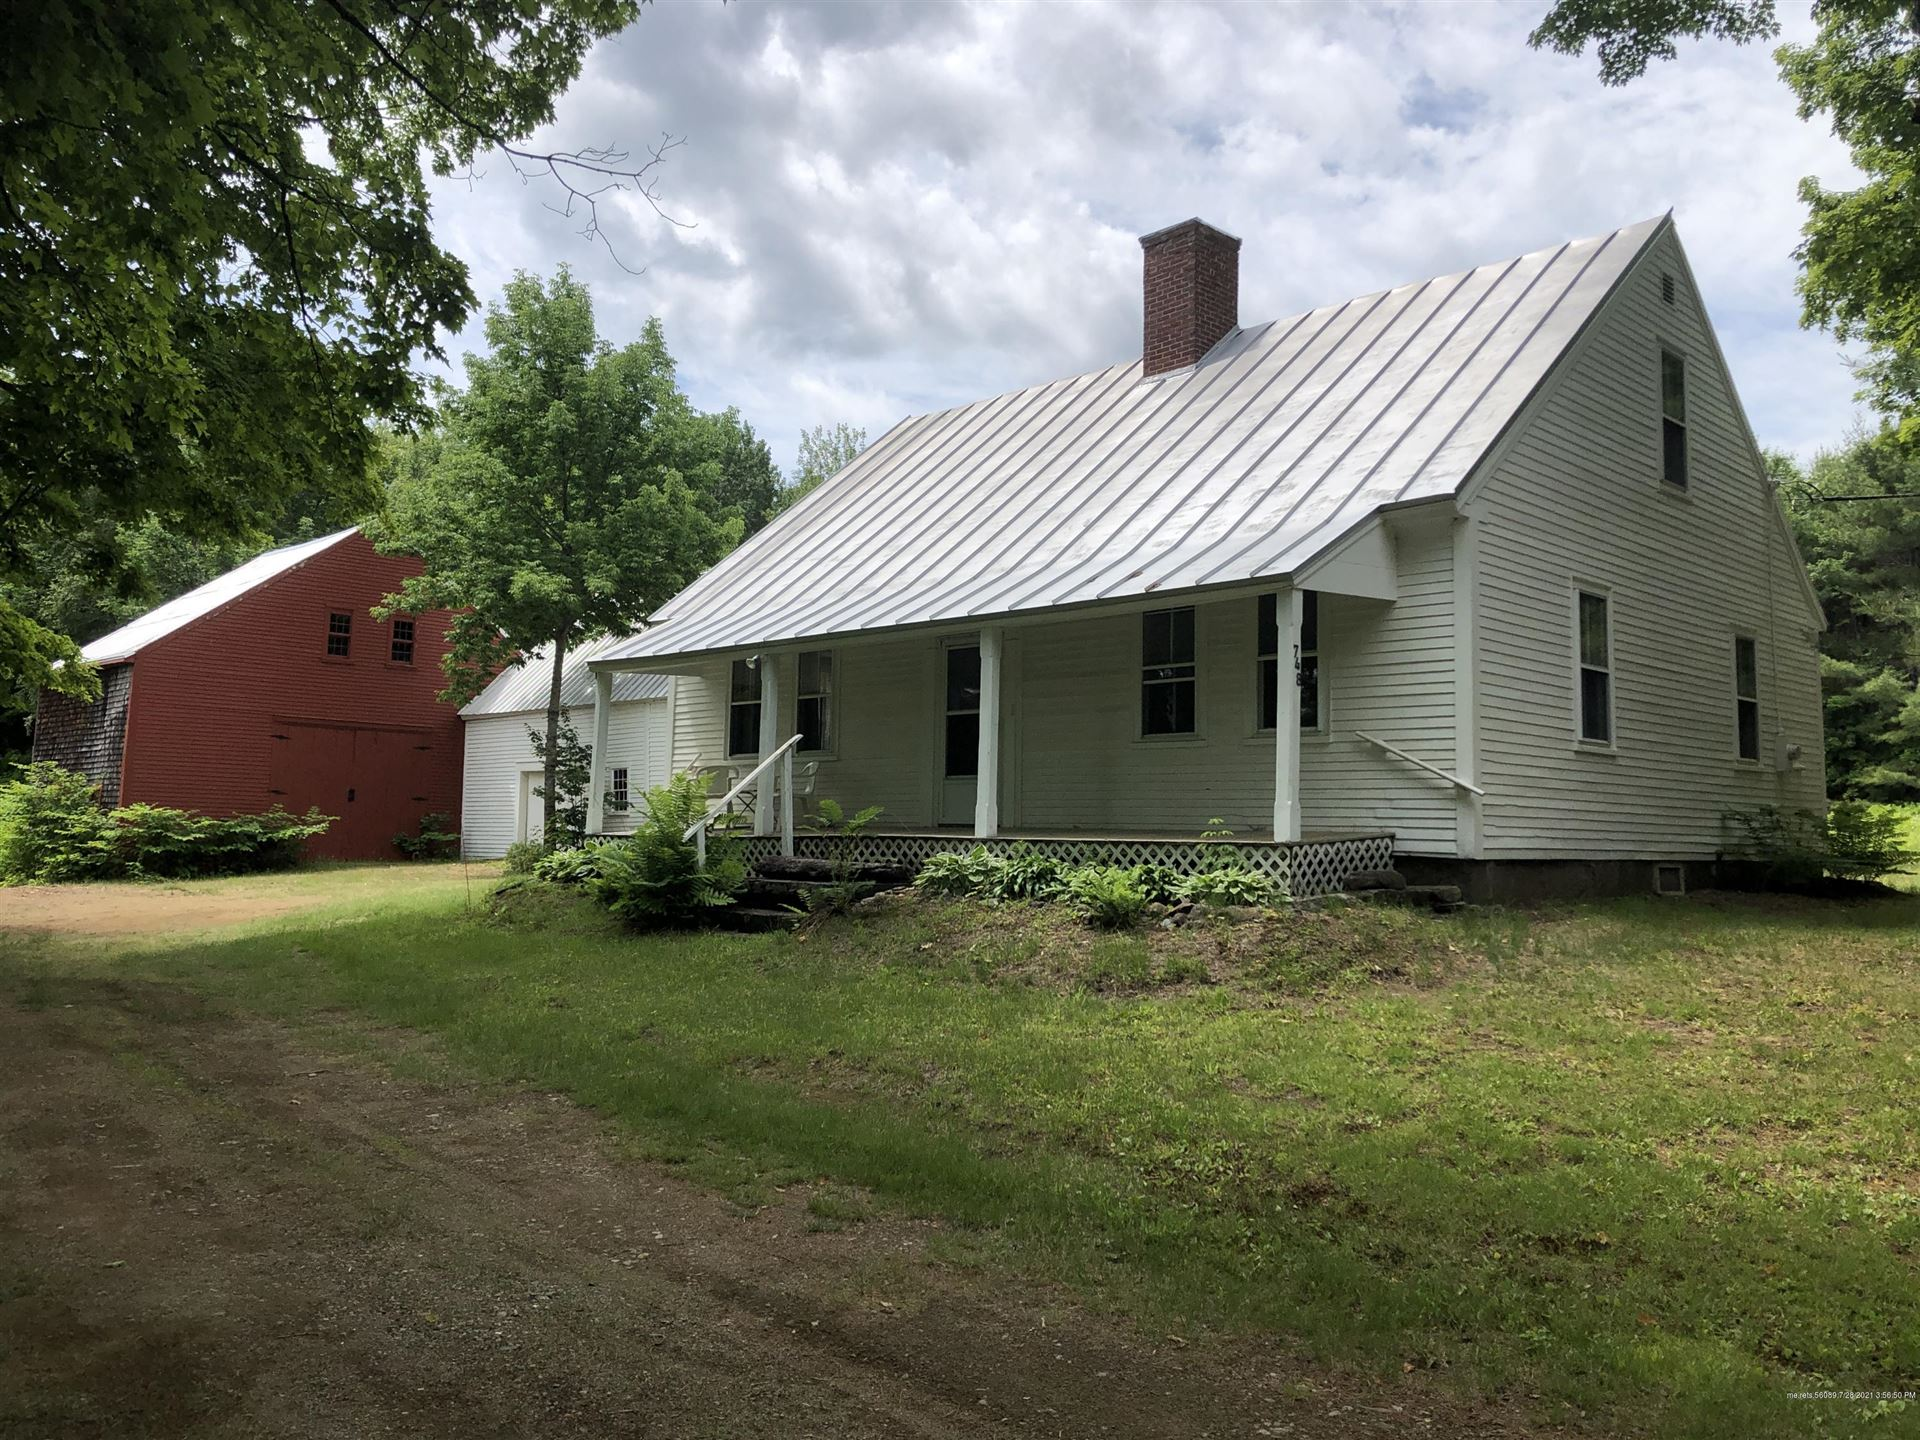 Photo of 748 Middle Road, New Portland, ME 04961 (MLS # 1497089)